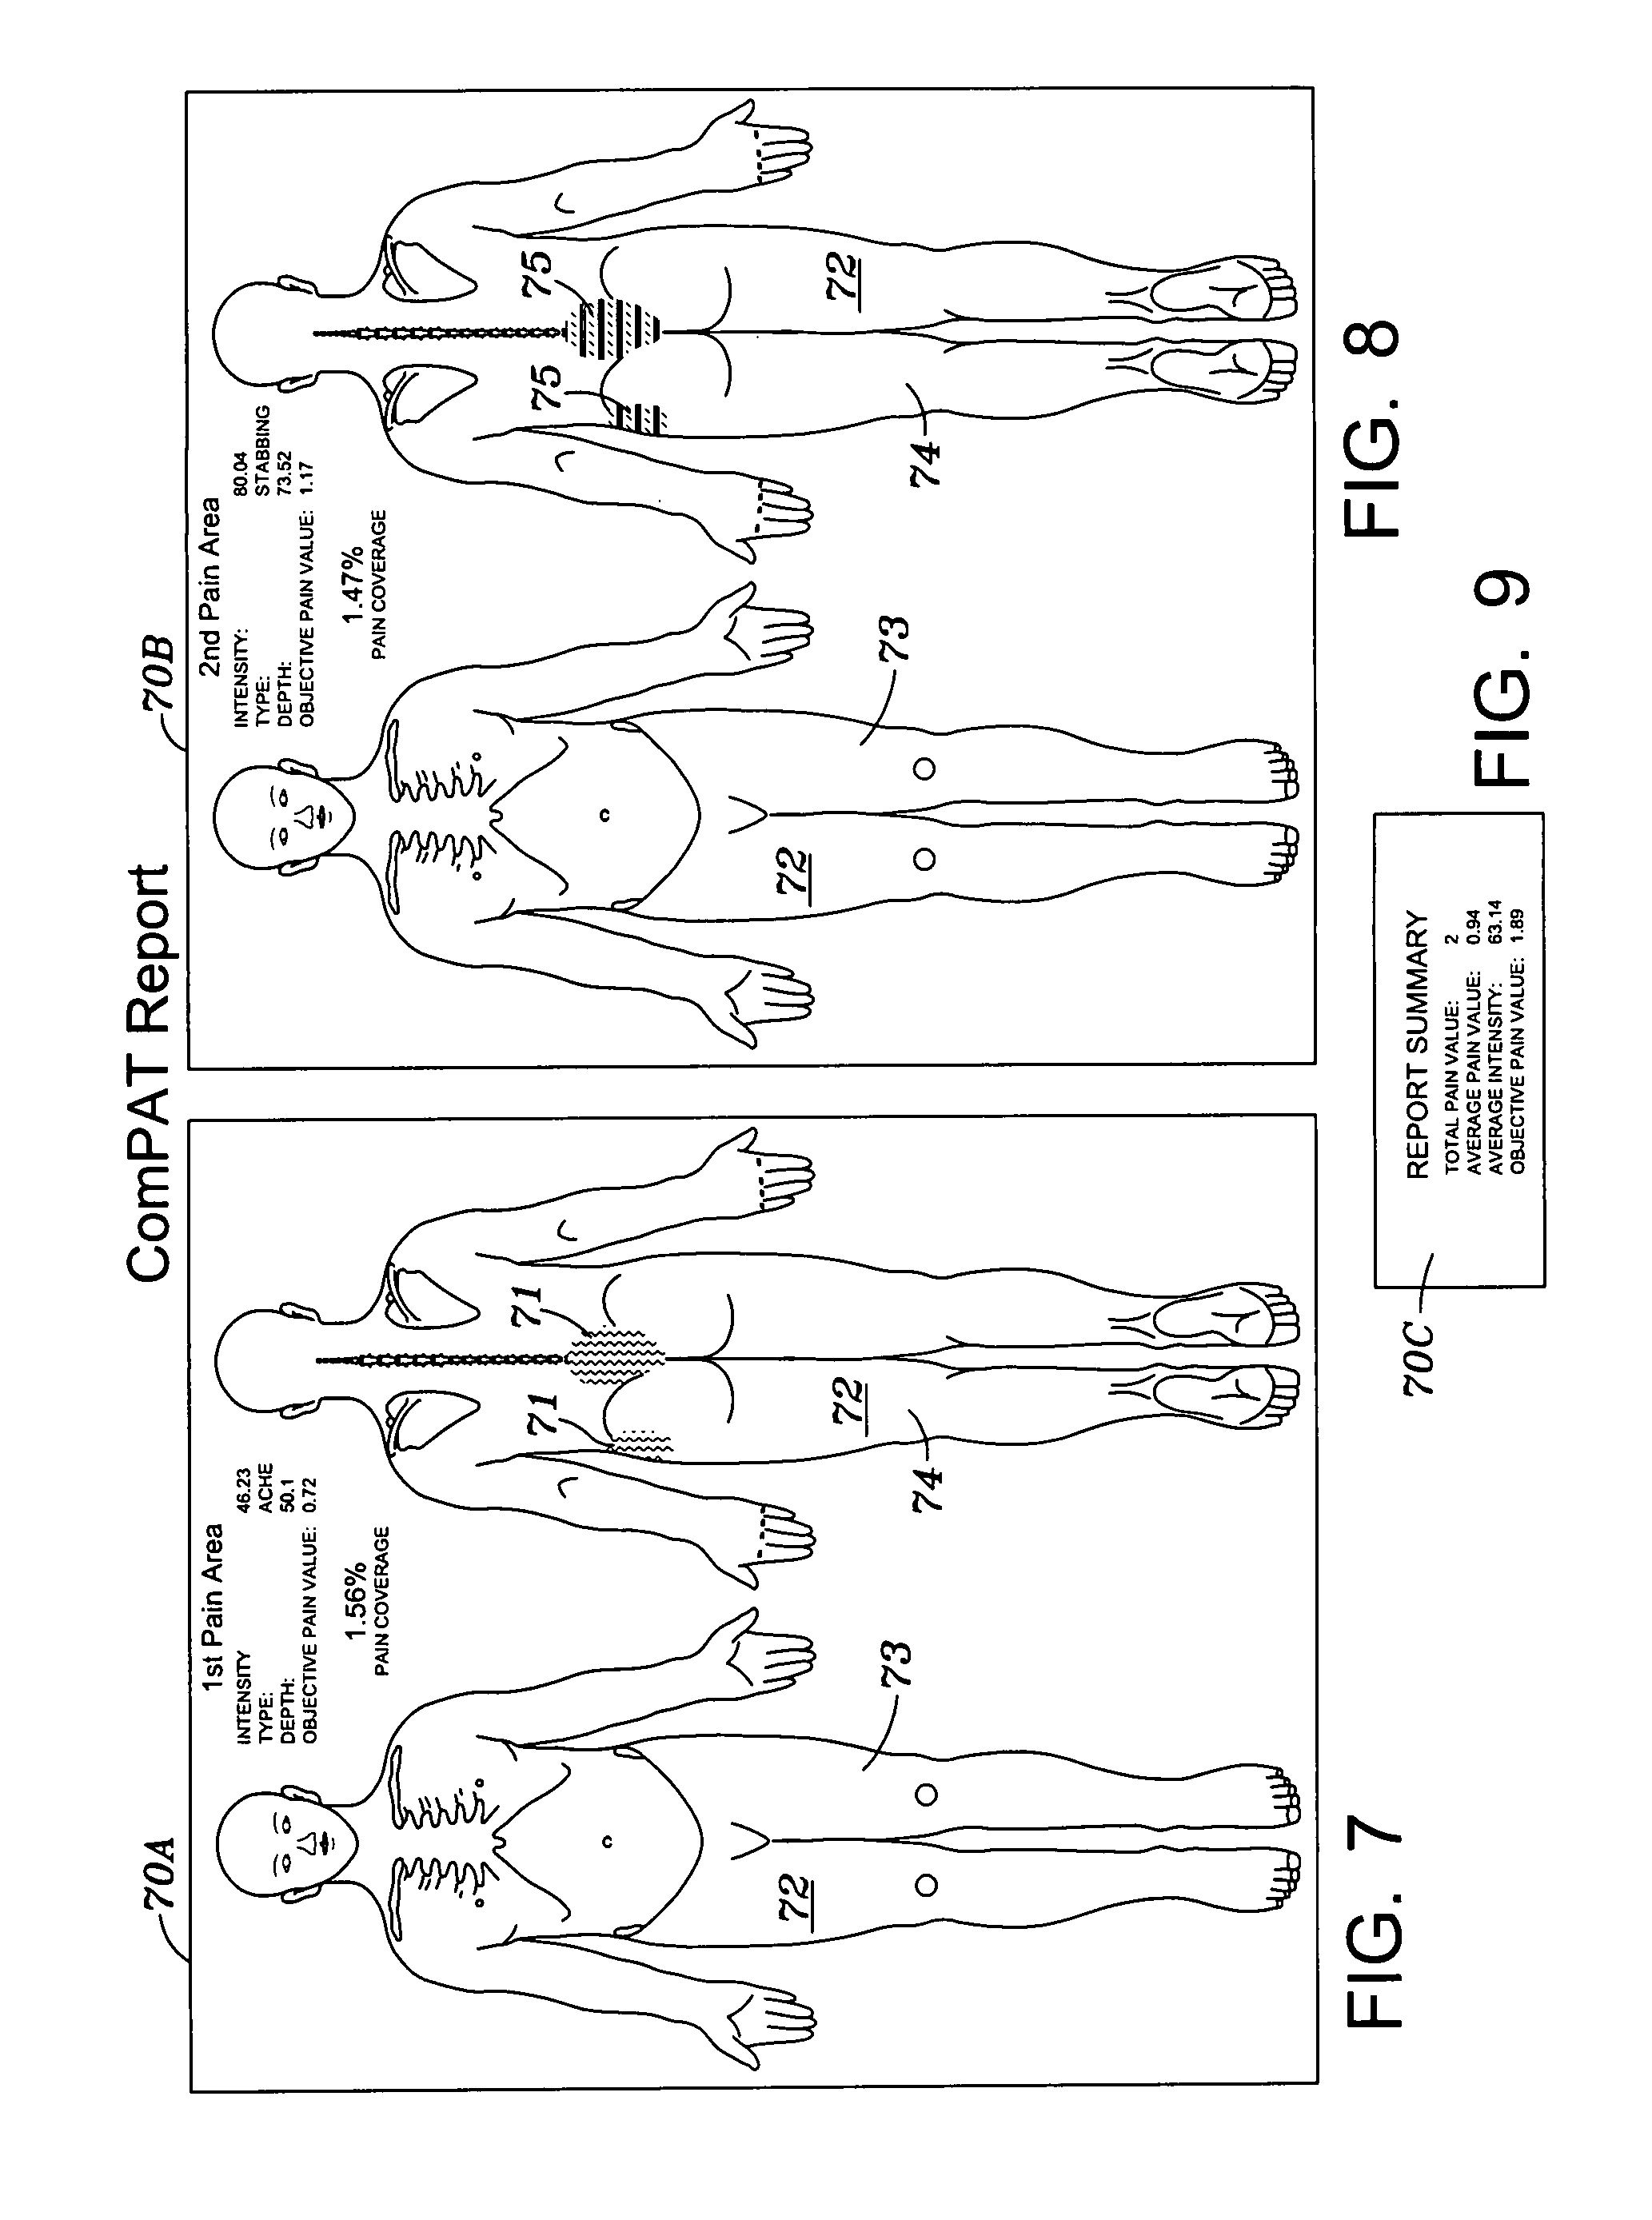 Patent US8046241 - Computer pain assessment tool - Google